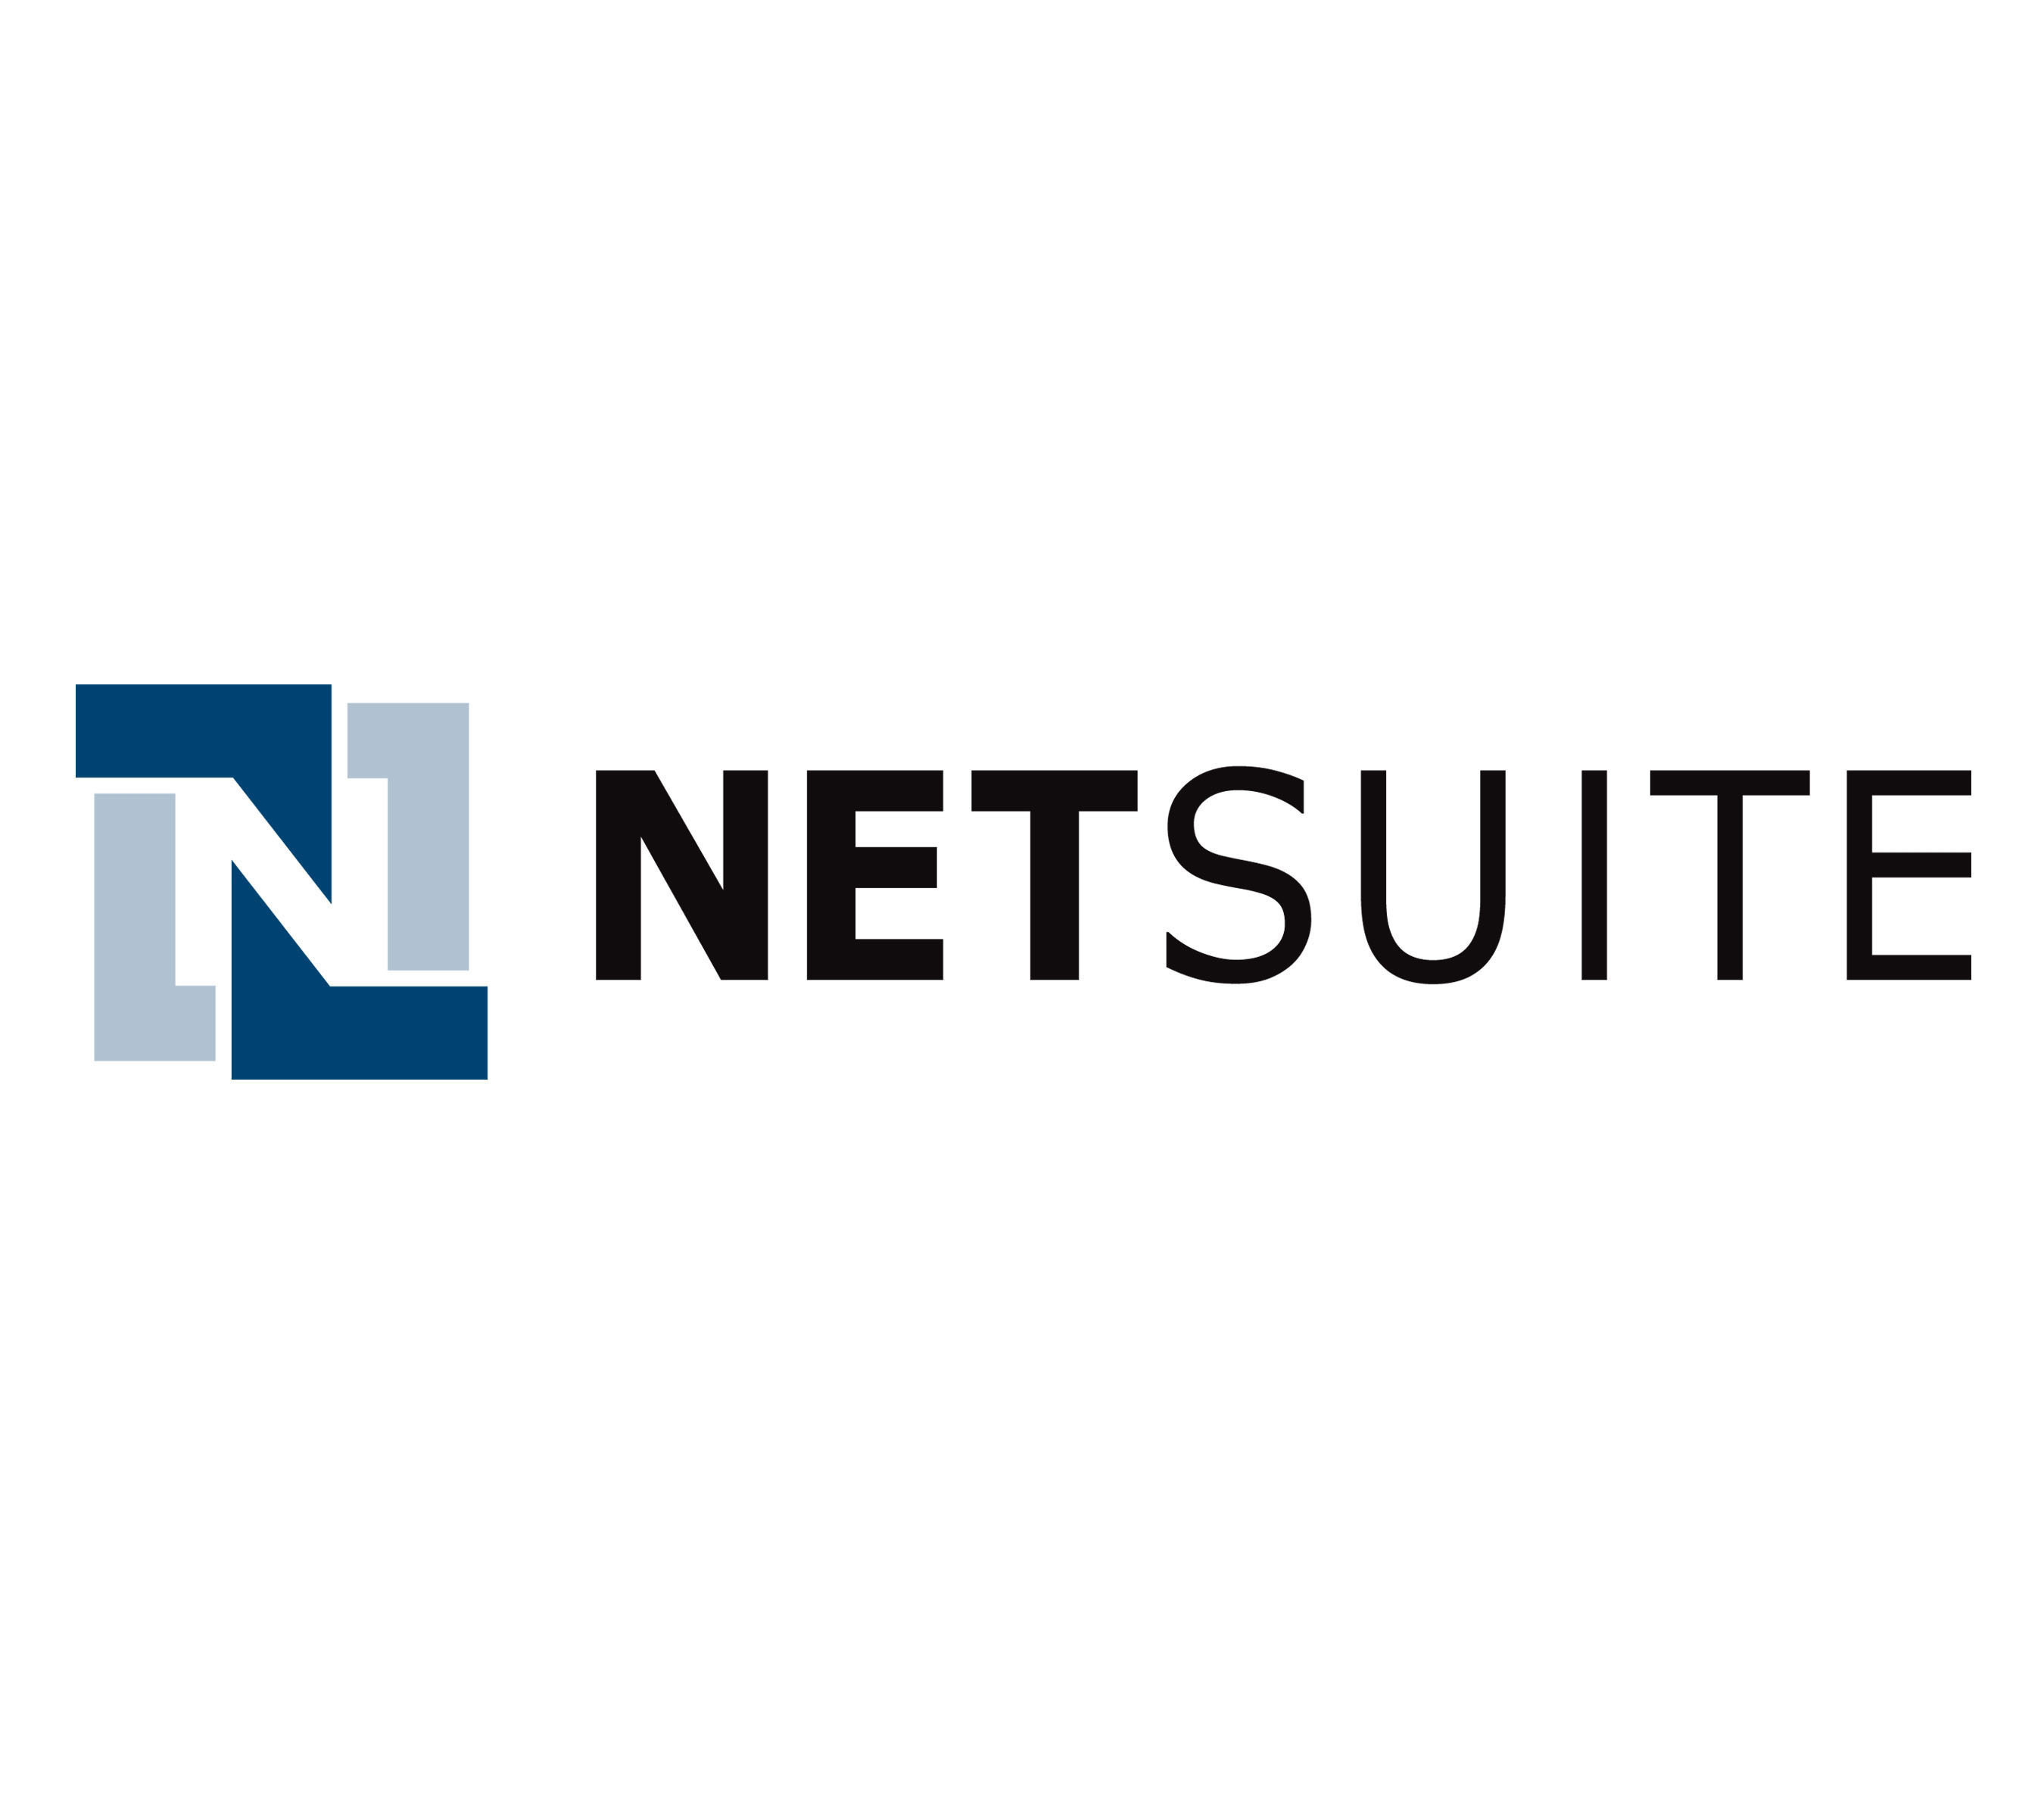 NetSuite. Where Business is Going. (PRNewsFoto/NetSuite Inc.)